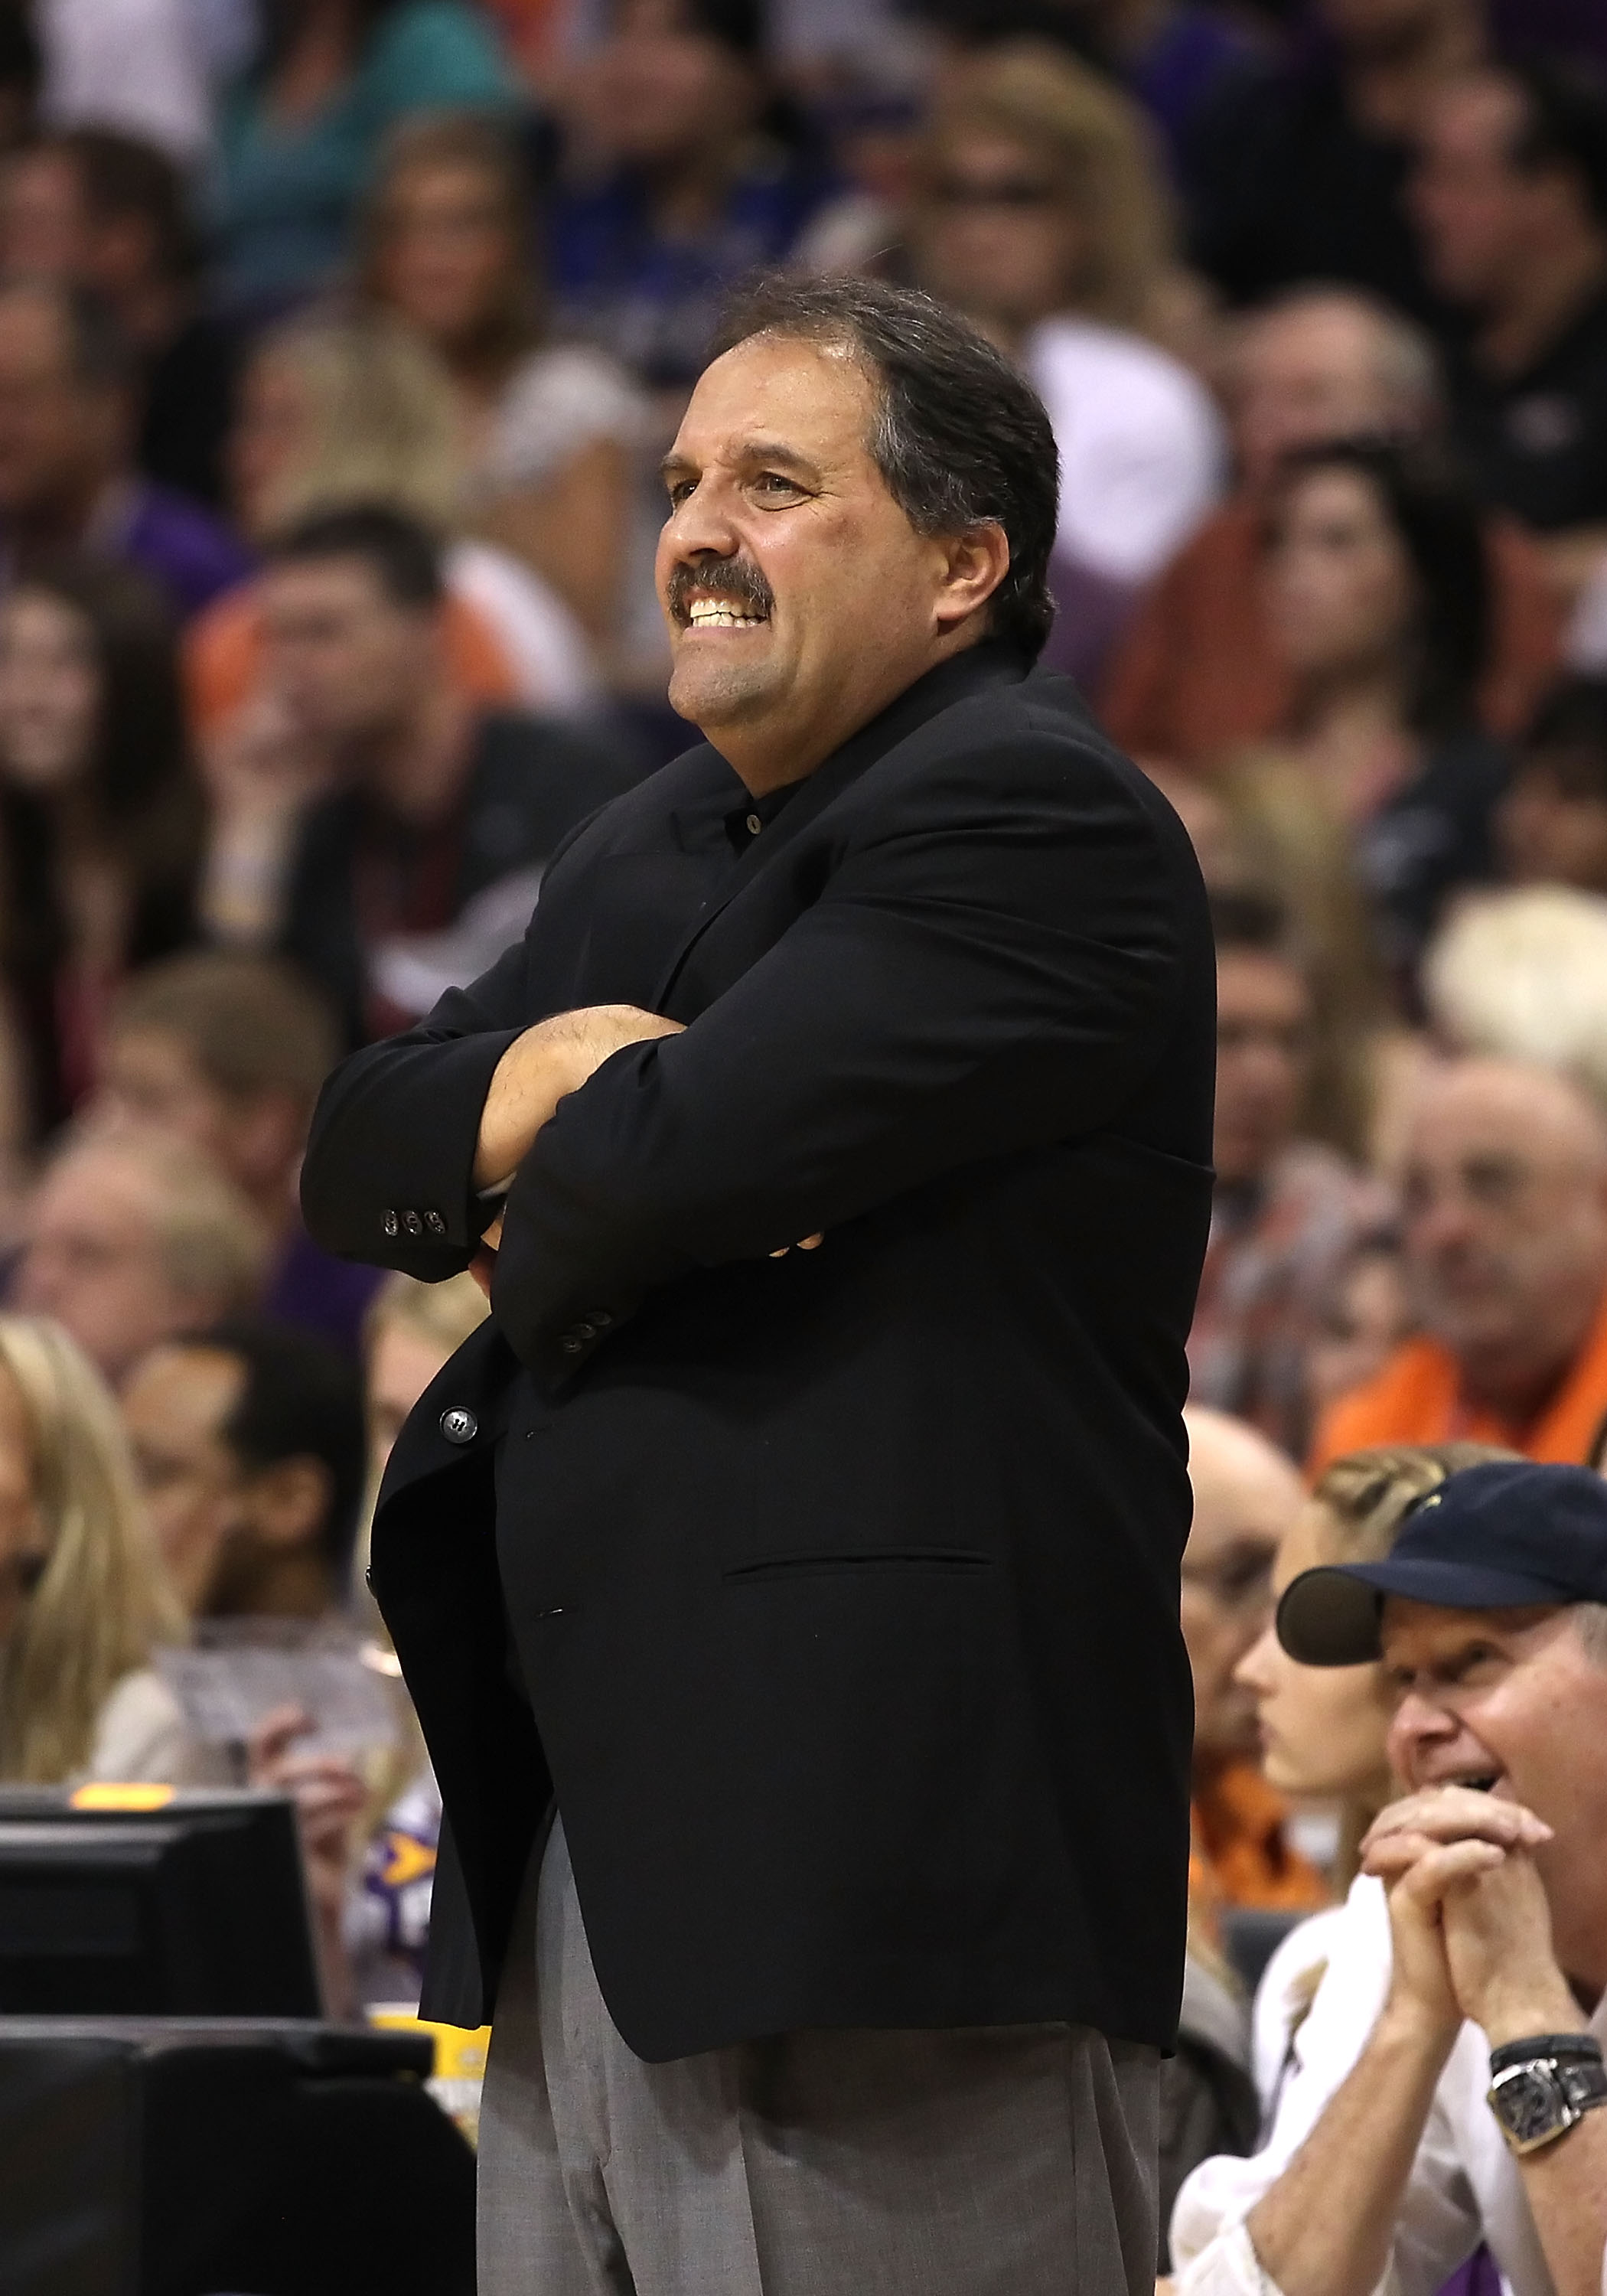 PHOENIX, AZ - MARCH 13:  Head coach Stan Van Gundy of the Orlando Magic reacts during the NBA game against the Phoenix Suns at US Airways Center on March 13, 2011 in Phoenix, Arizona.  The Magic defeated the Suns 111-88.  NOTE TO USER: User expressly ackn